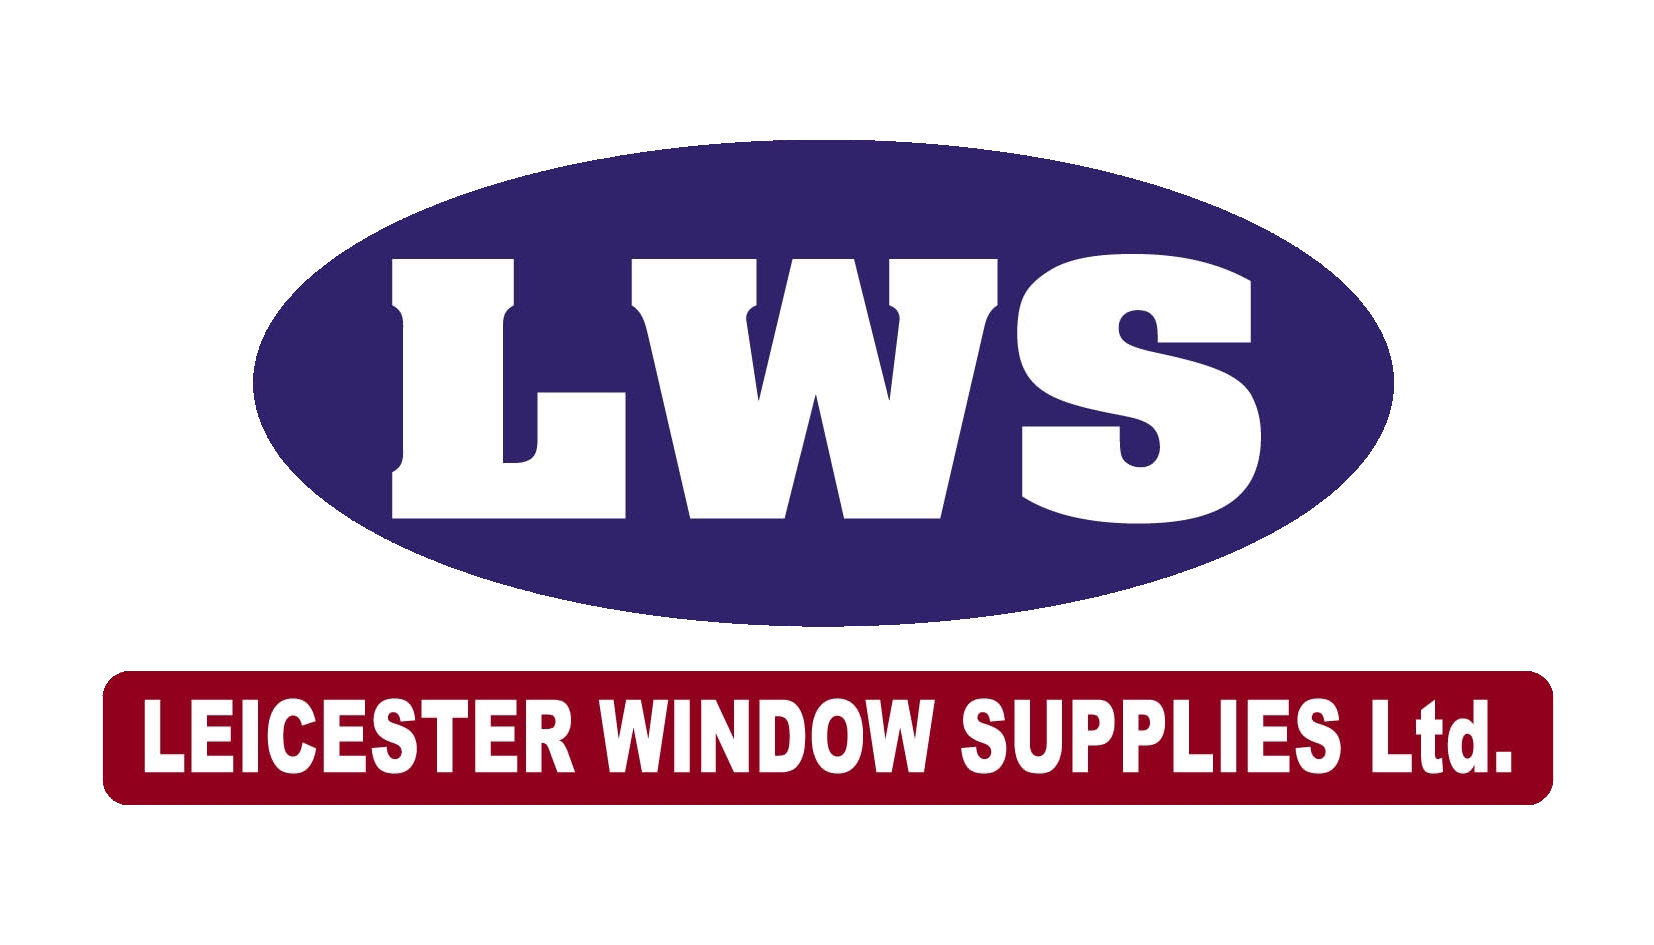 Leicester Window Supplies